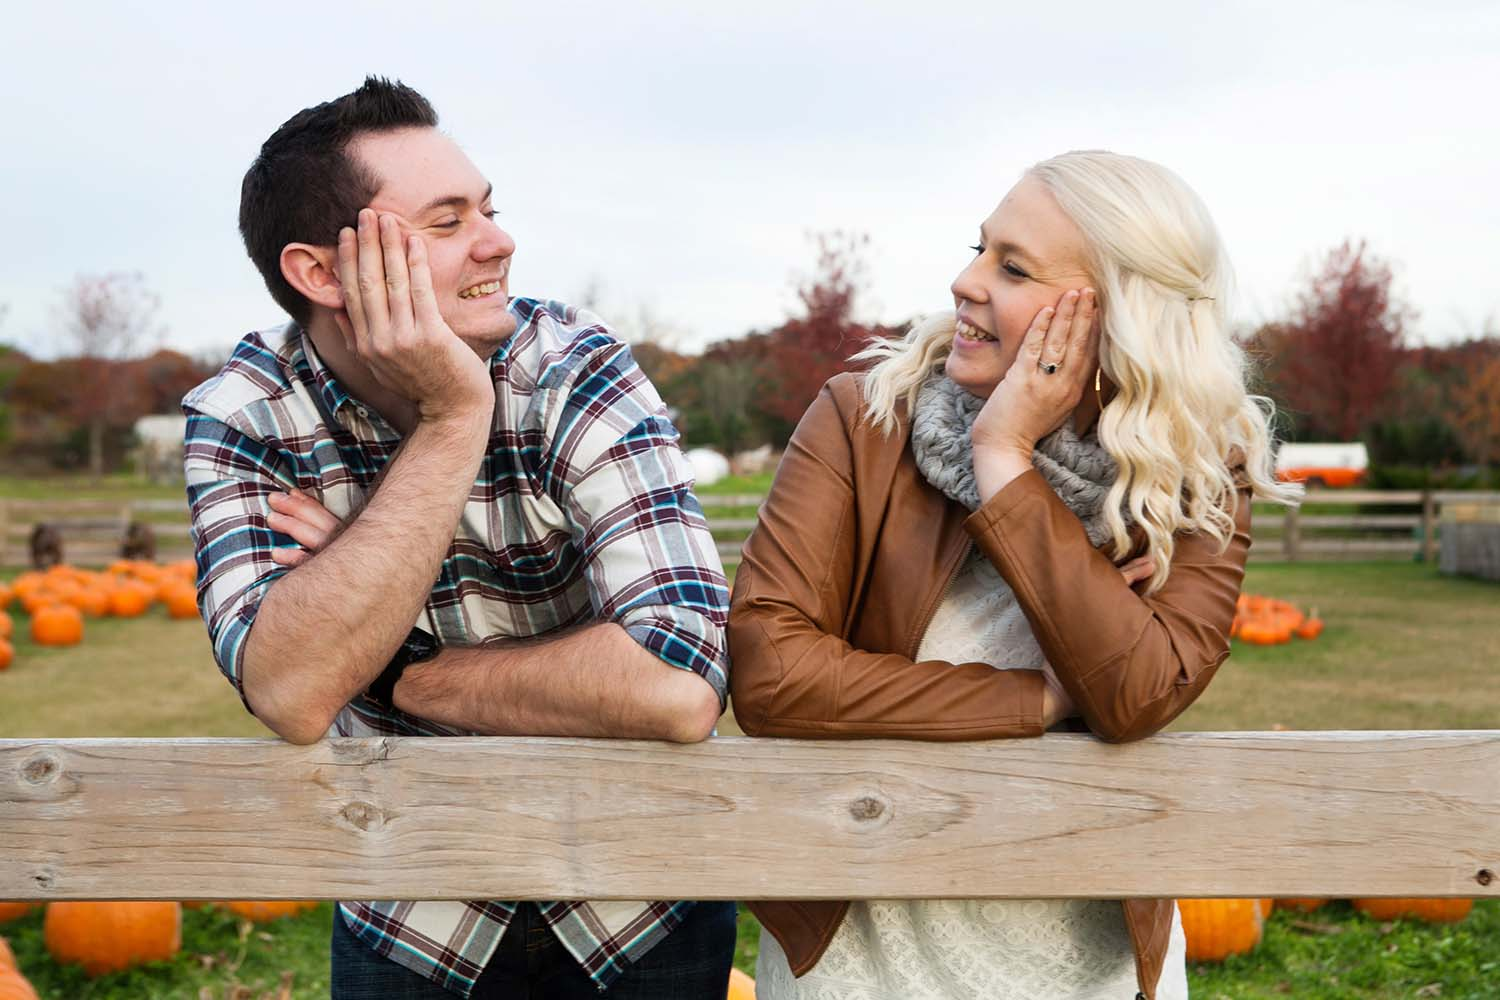 Pumpkin Patch Engagement Photo Illinois, Minnesota wedding photographer